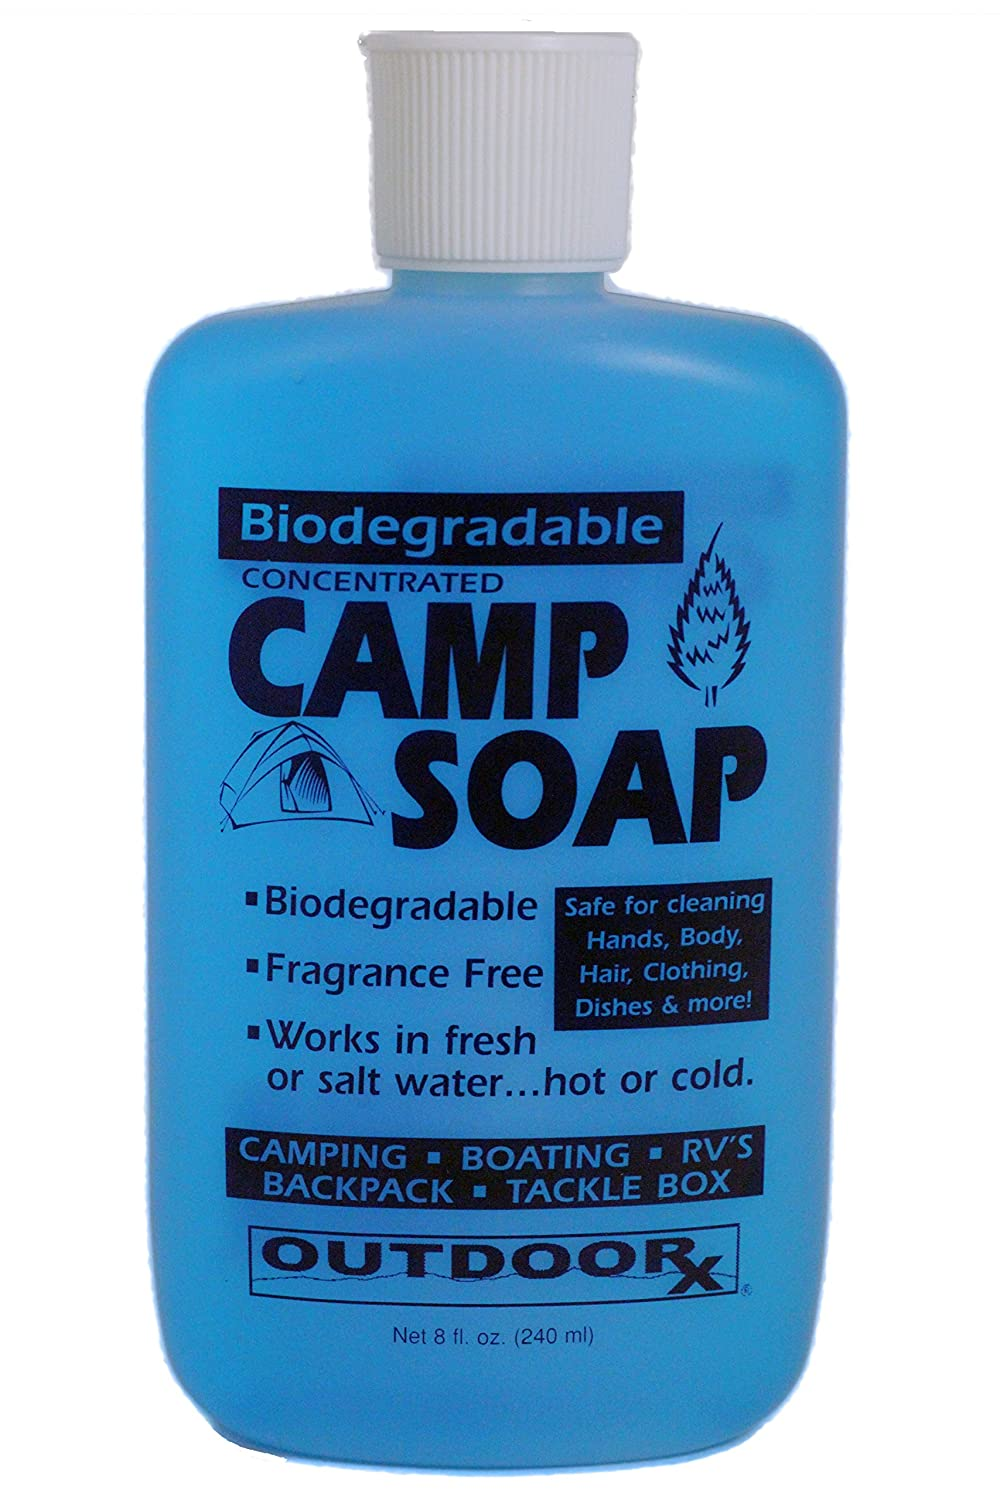 Outdoor RX 320 Biodegradable, Concentrated, Fragrance Free Camp Soap